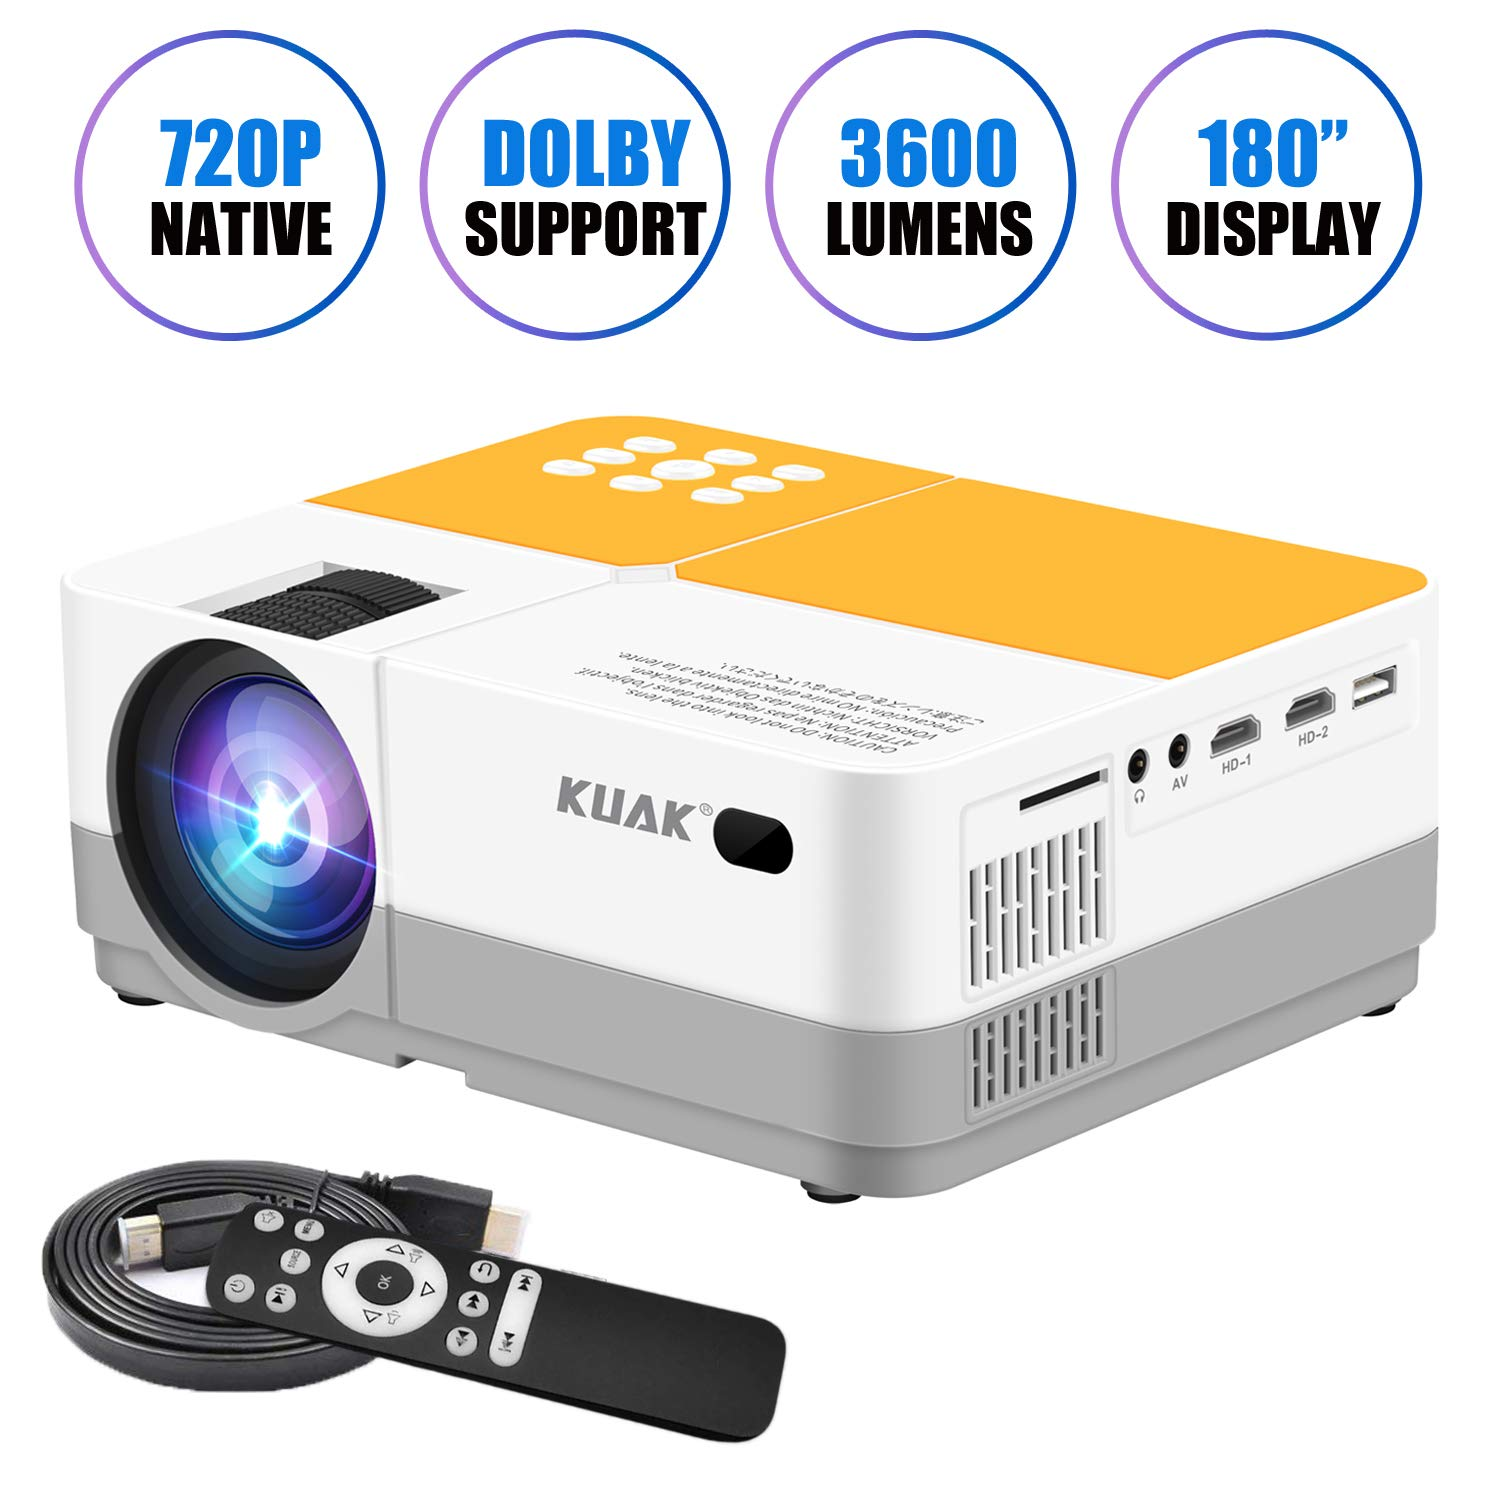 Projector, KUAK Native 720P Mini Portable Movie Projector, LCD HD Video Projector Support Full HD 1080P, Home Theater Projector with 180'' Screen and Electronic Zooming, Compatible with HDMI/VGA/AV/USB